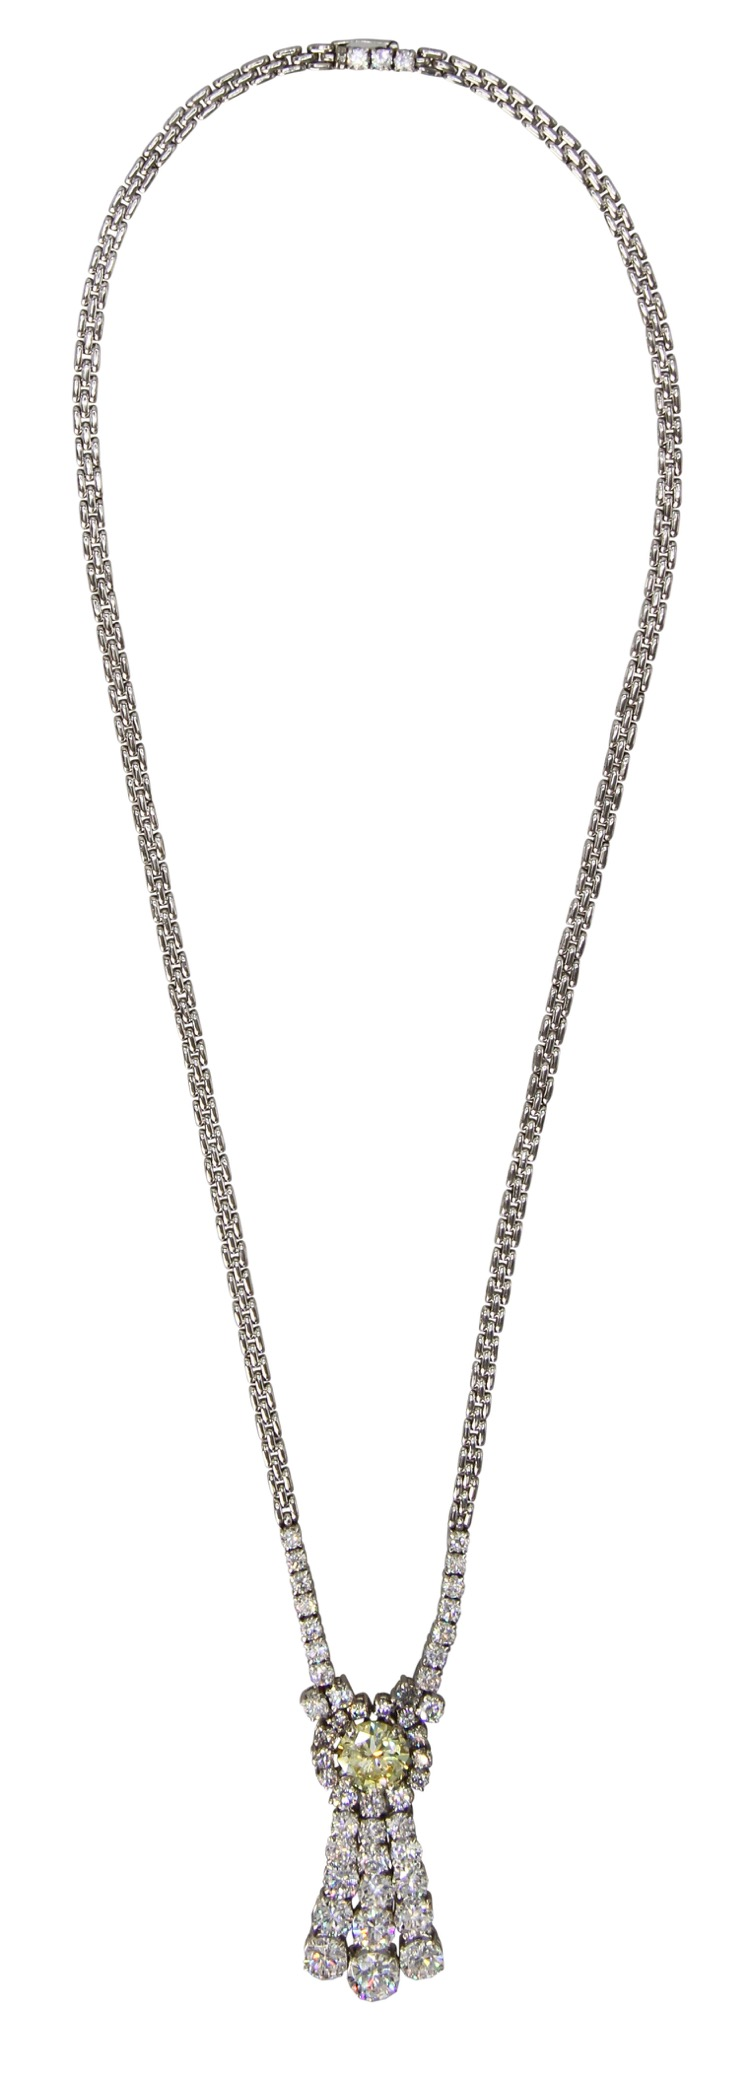 Platinum Diamond and Colored Diamond Necklace